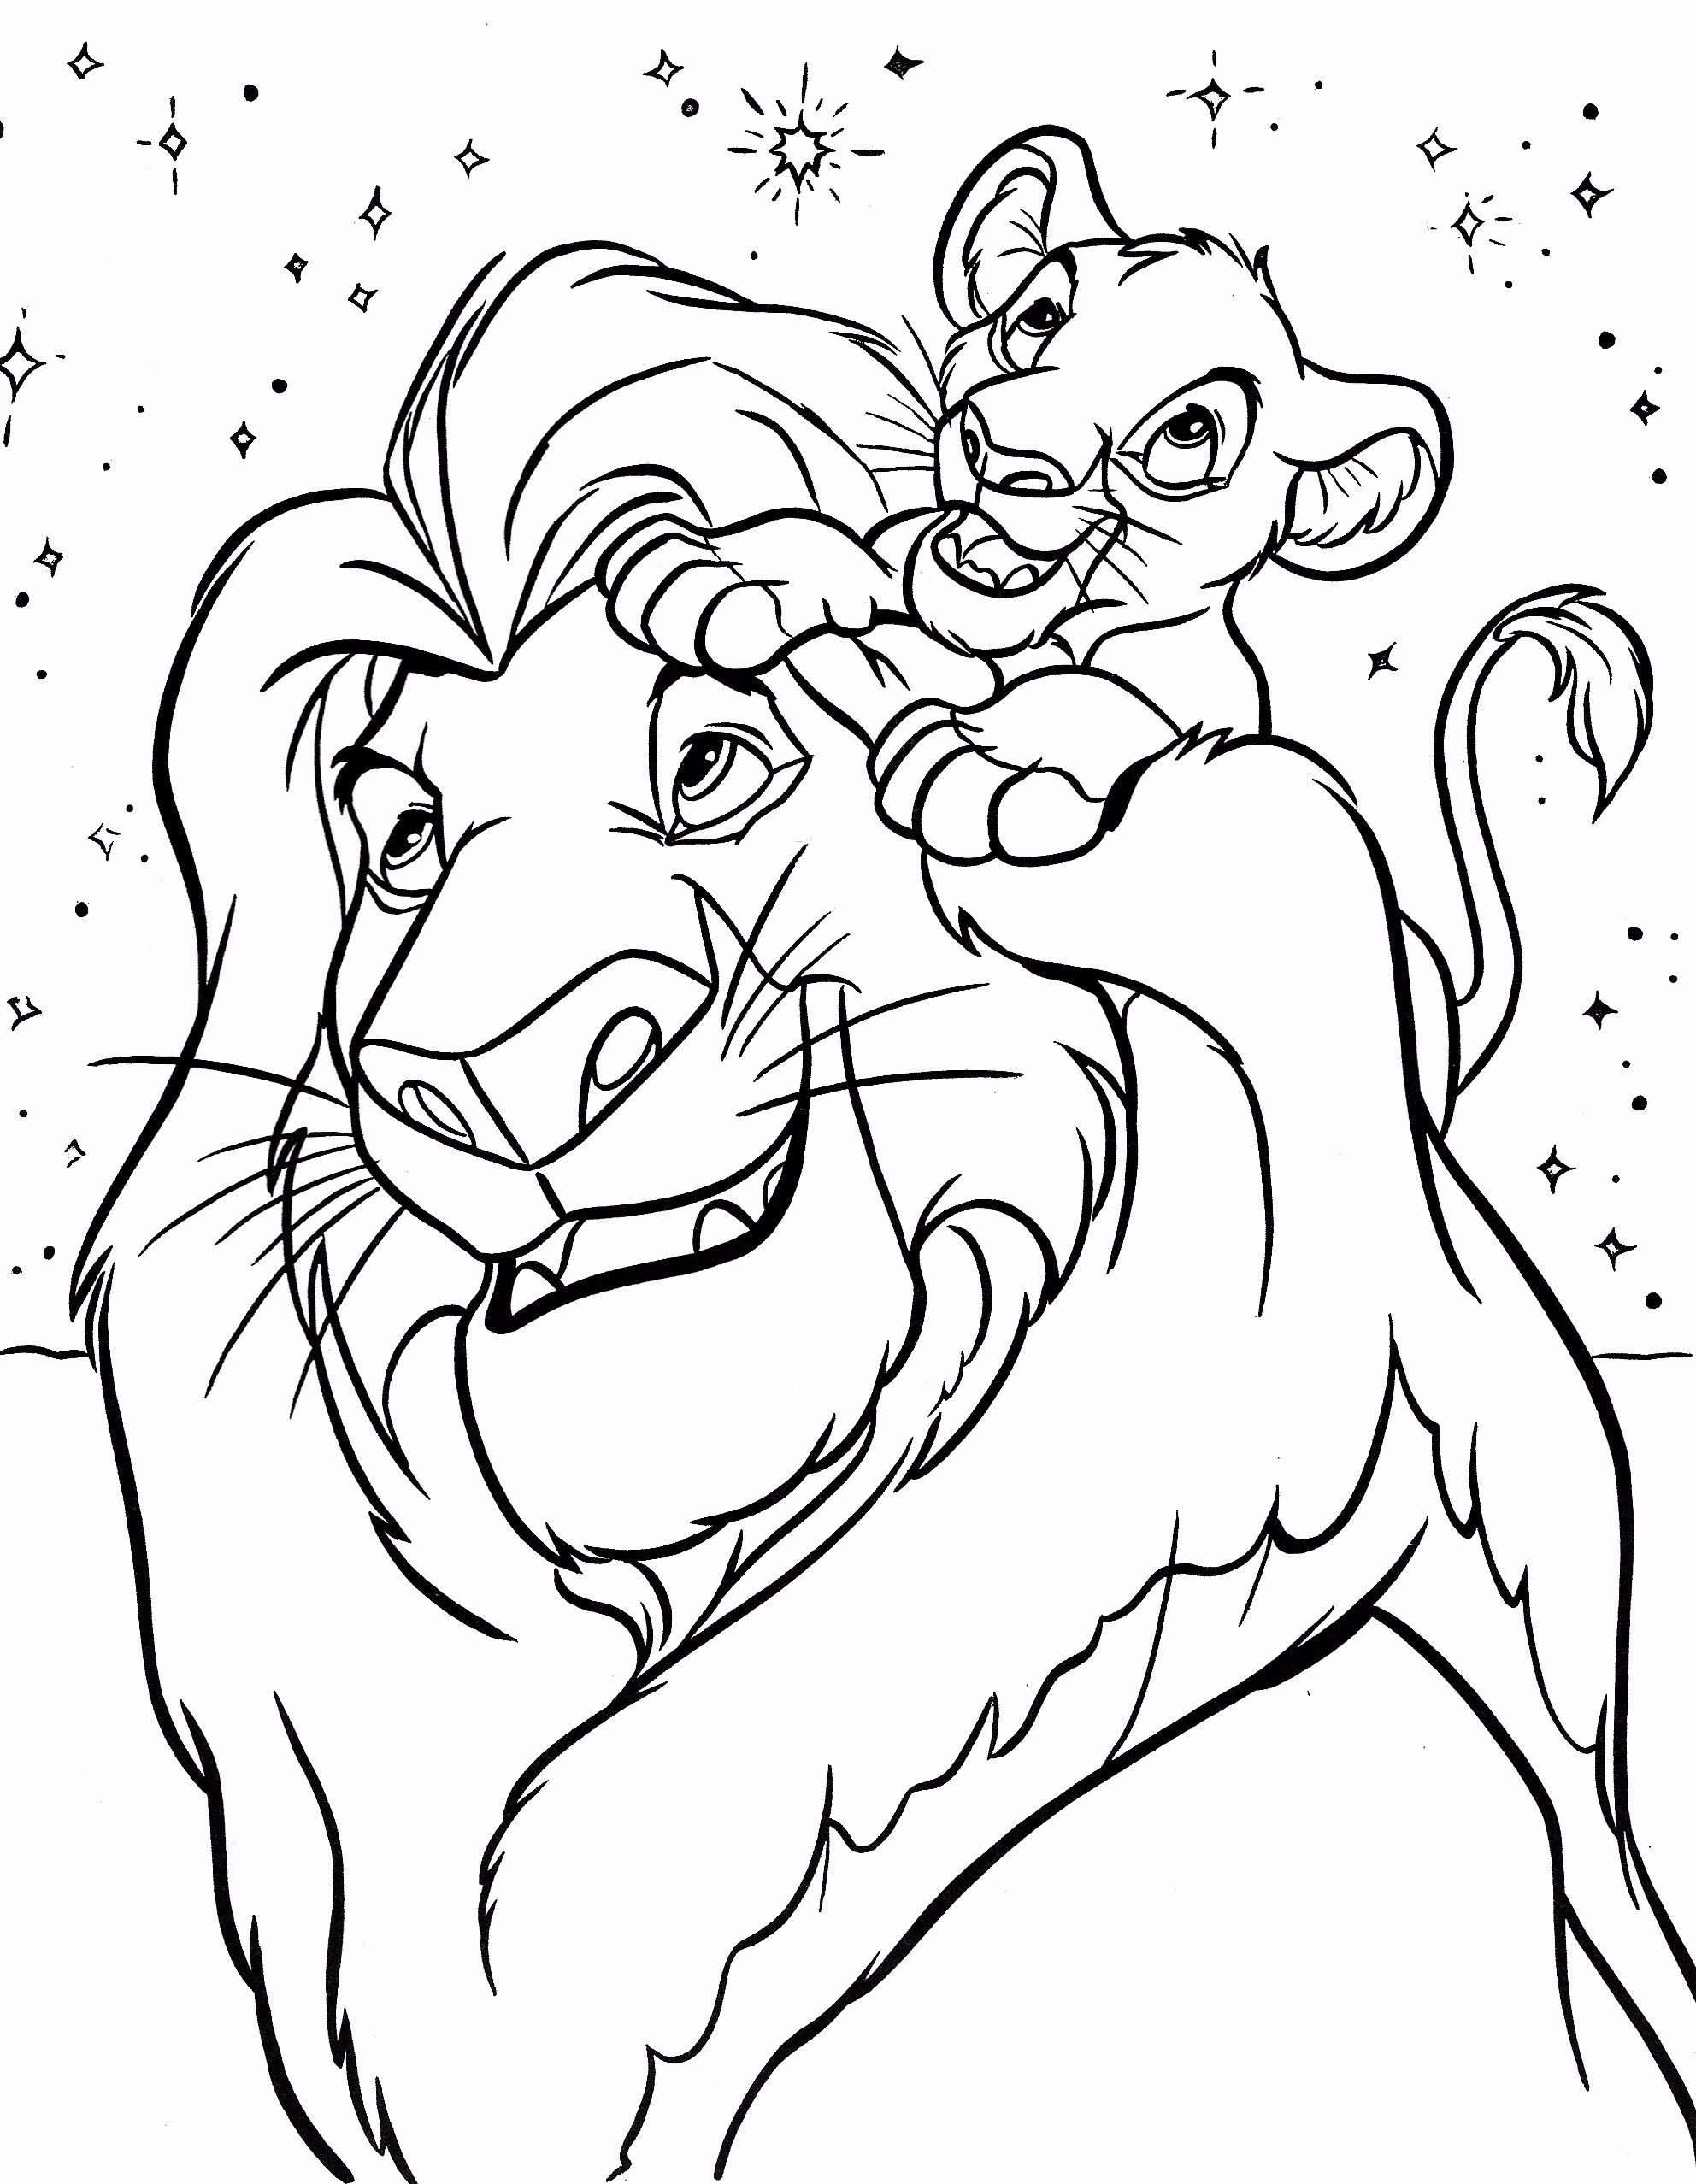 Coloring By Numbers Disney Lovely Print Free Coloring Pages Disney 9 L Disney Printables Lion Coloring Pages Free Disney Coloring Pages Disney Coloring Sheets